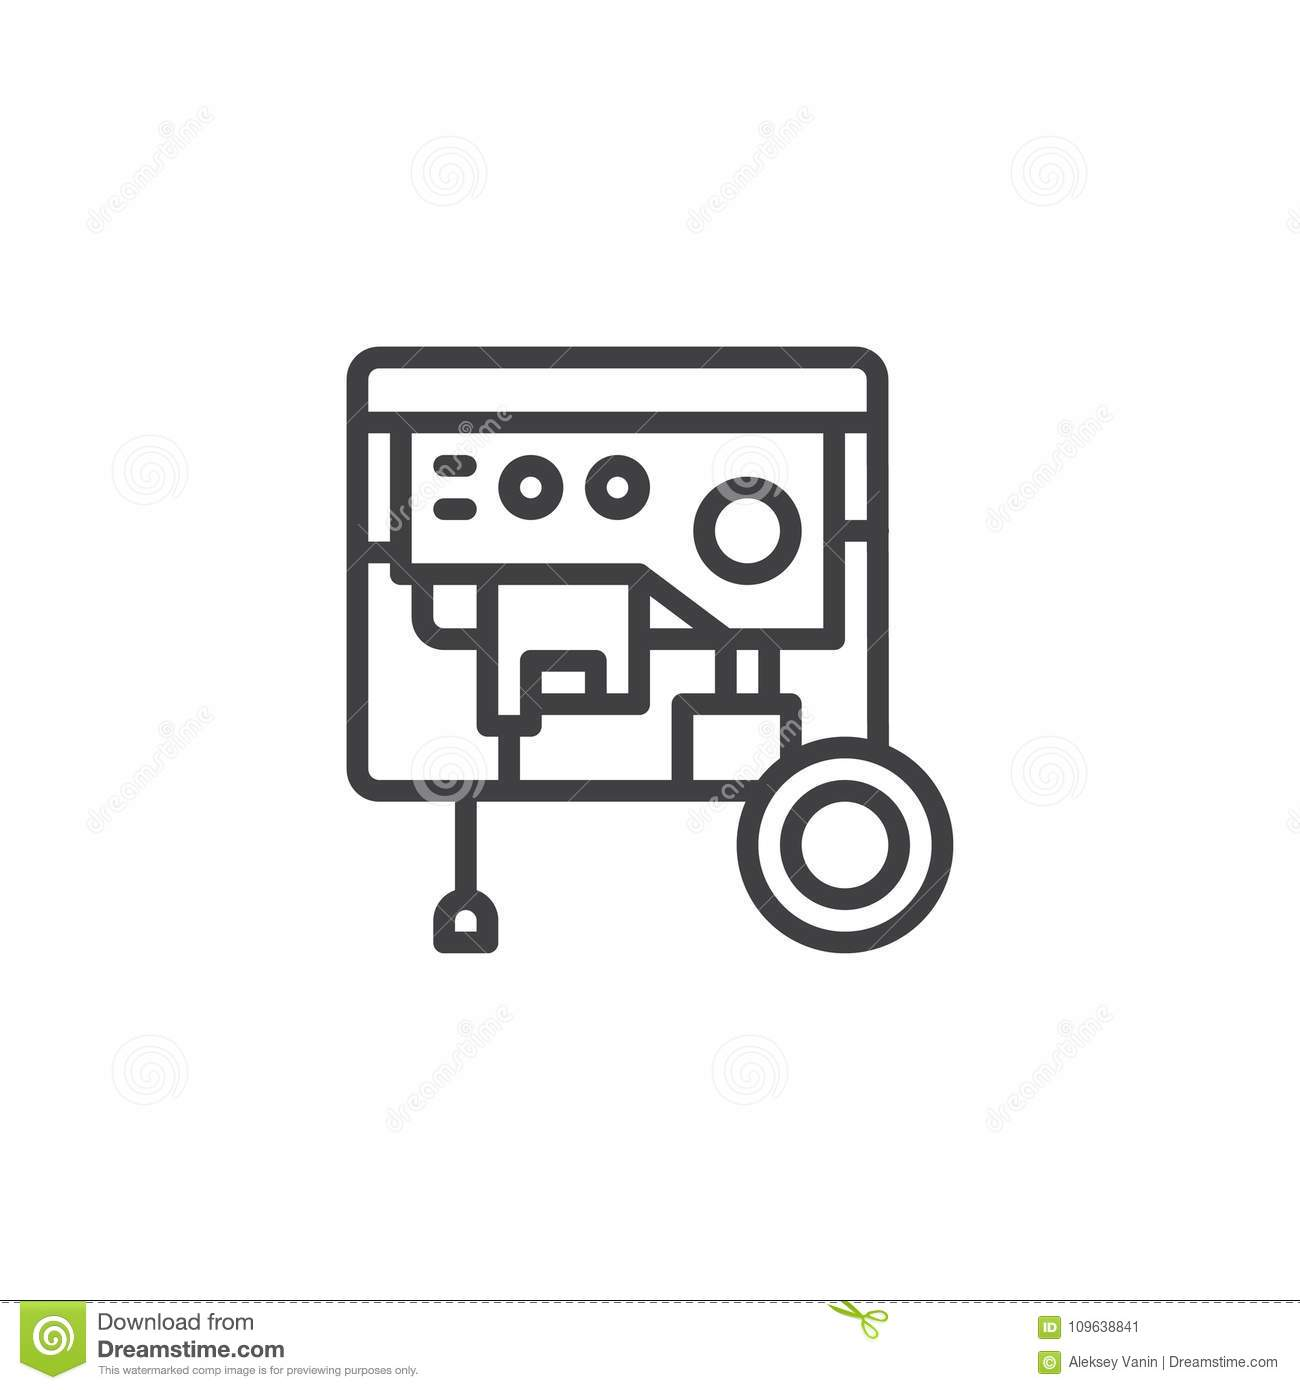 Portable Power Generator Line Icon Stock Vector - Illustration of ...